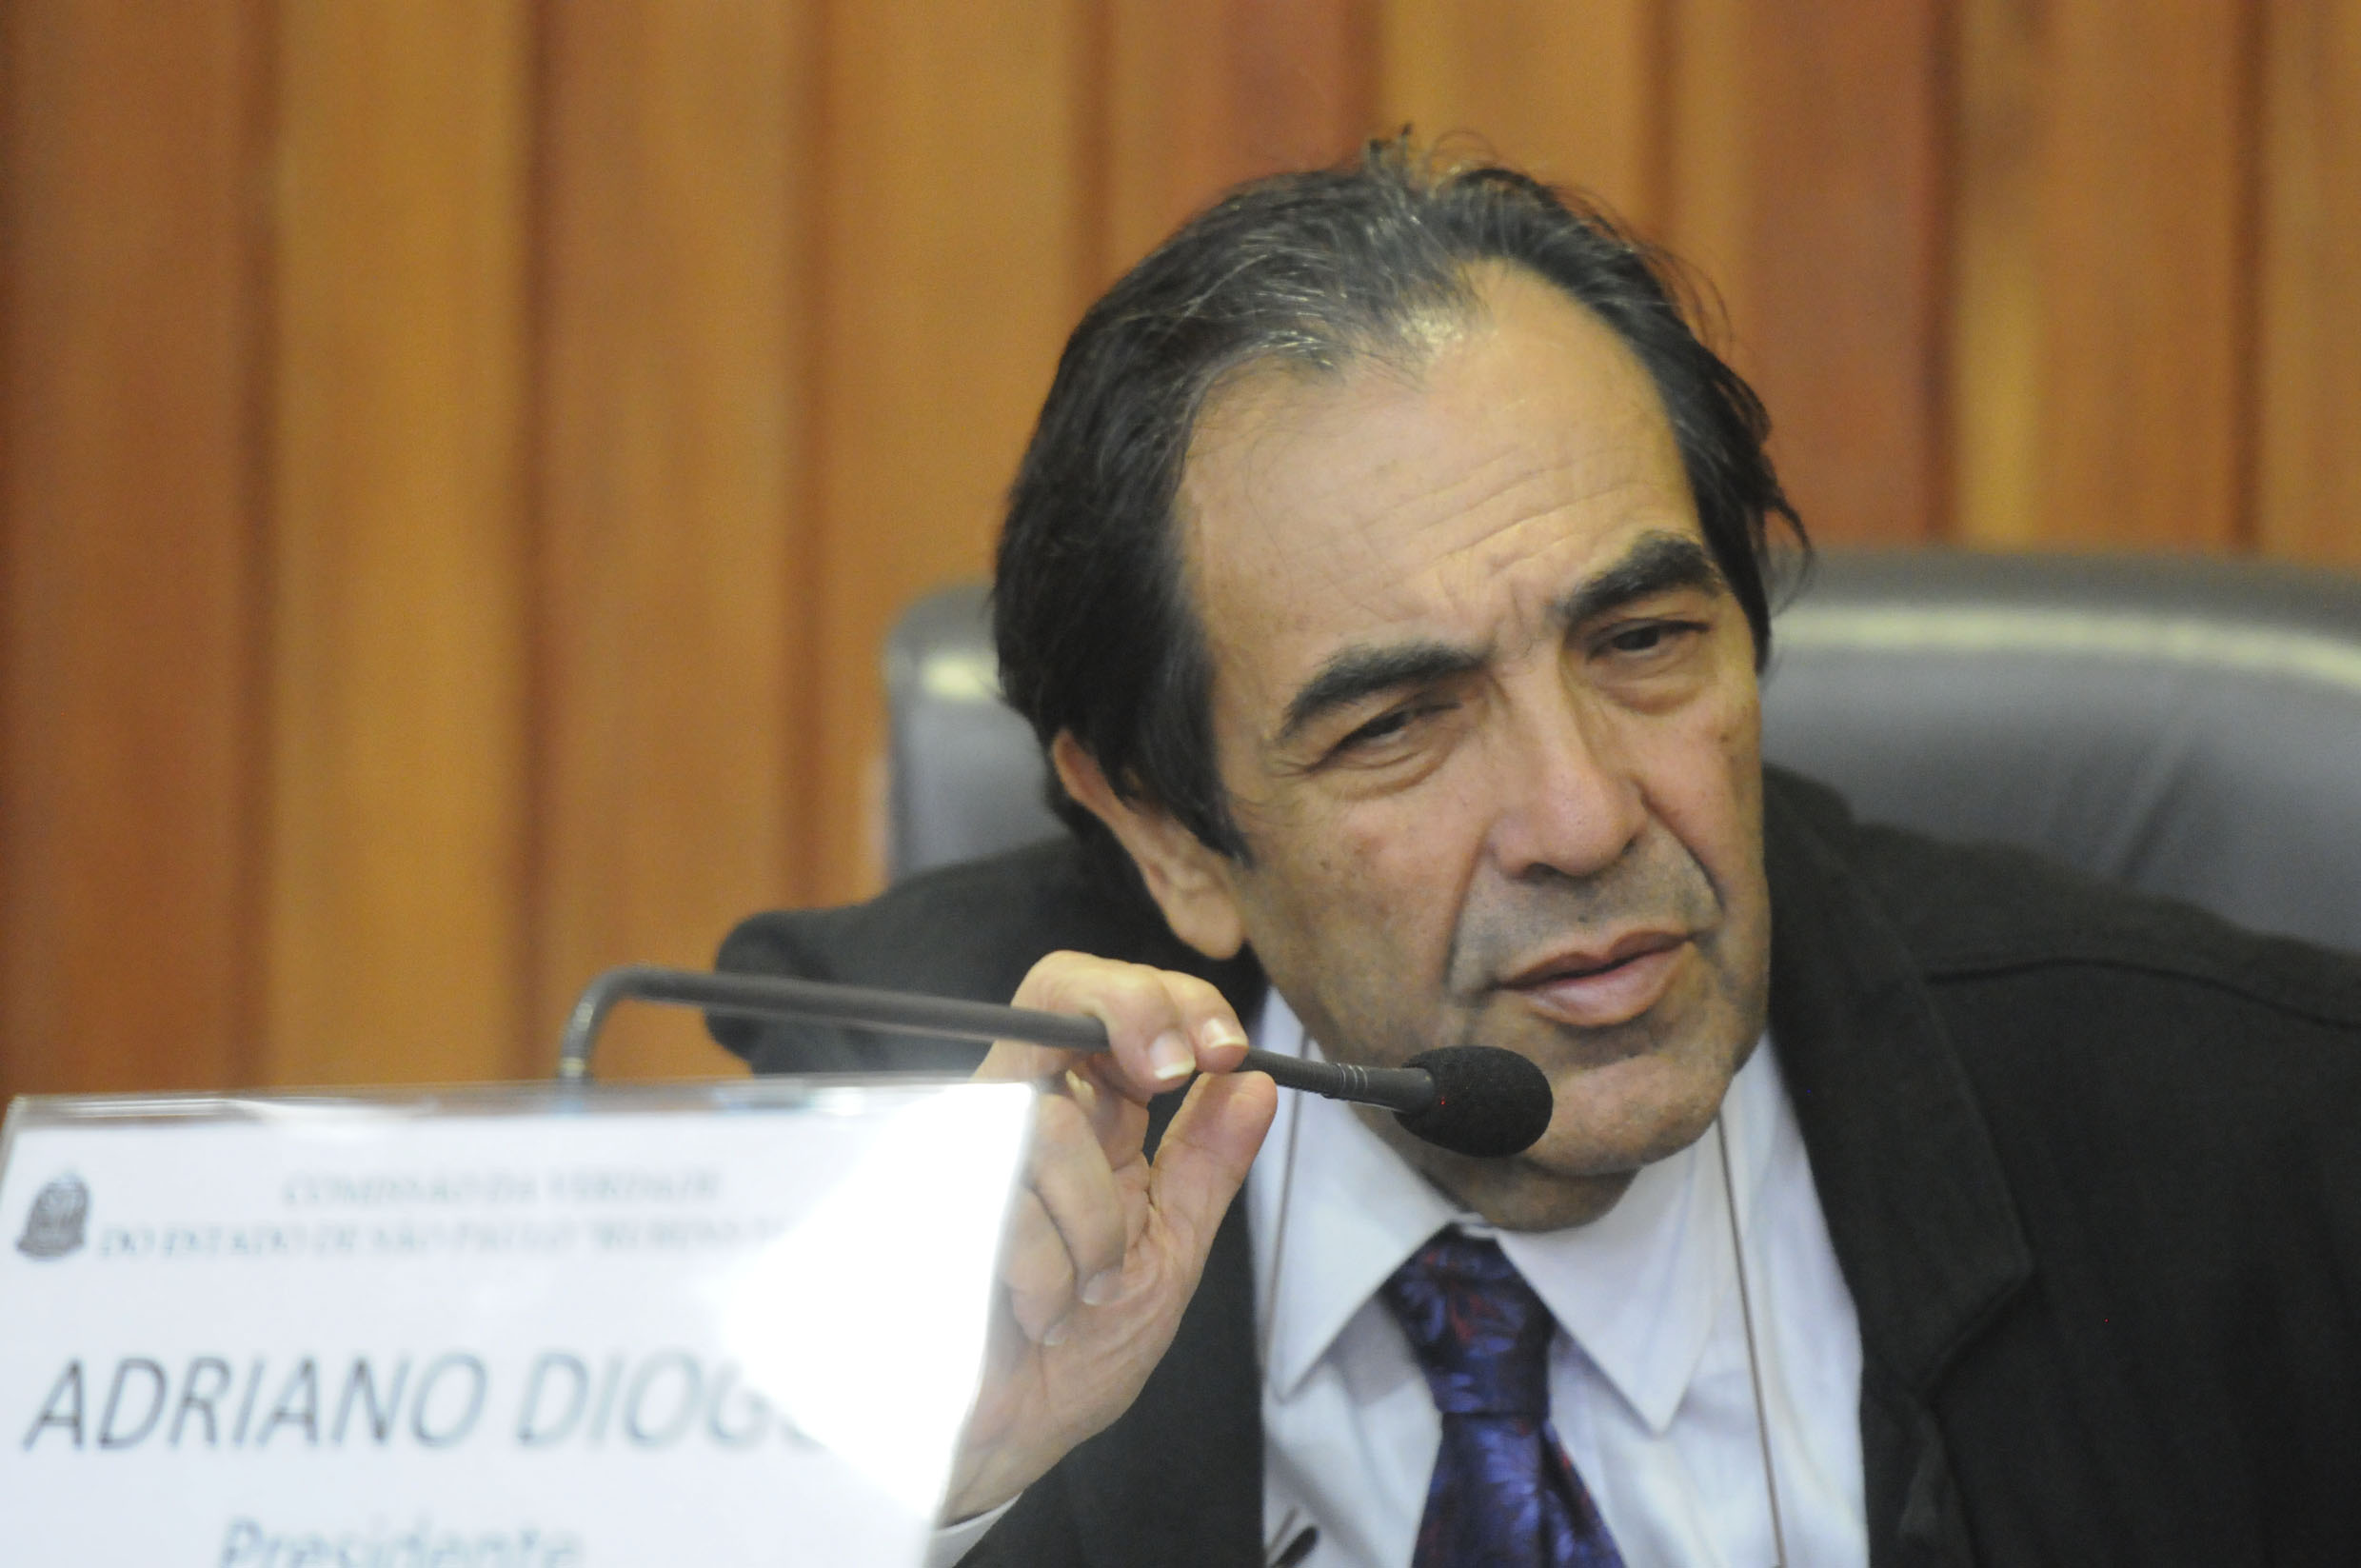 Adriano Diogo<a style='float:right' href='https://www3.al.sp.gov.br/repositorio/noticia/N-12-2013/fg156877.jpg' target=_blank><img src='/_img/material-file-download-white.png' width='14px' alt='Clique para baixar a imagem'></a>